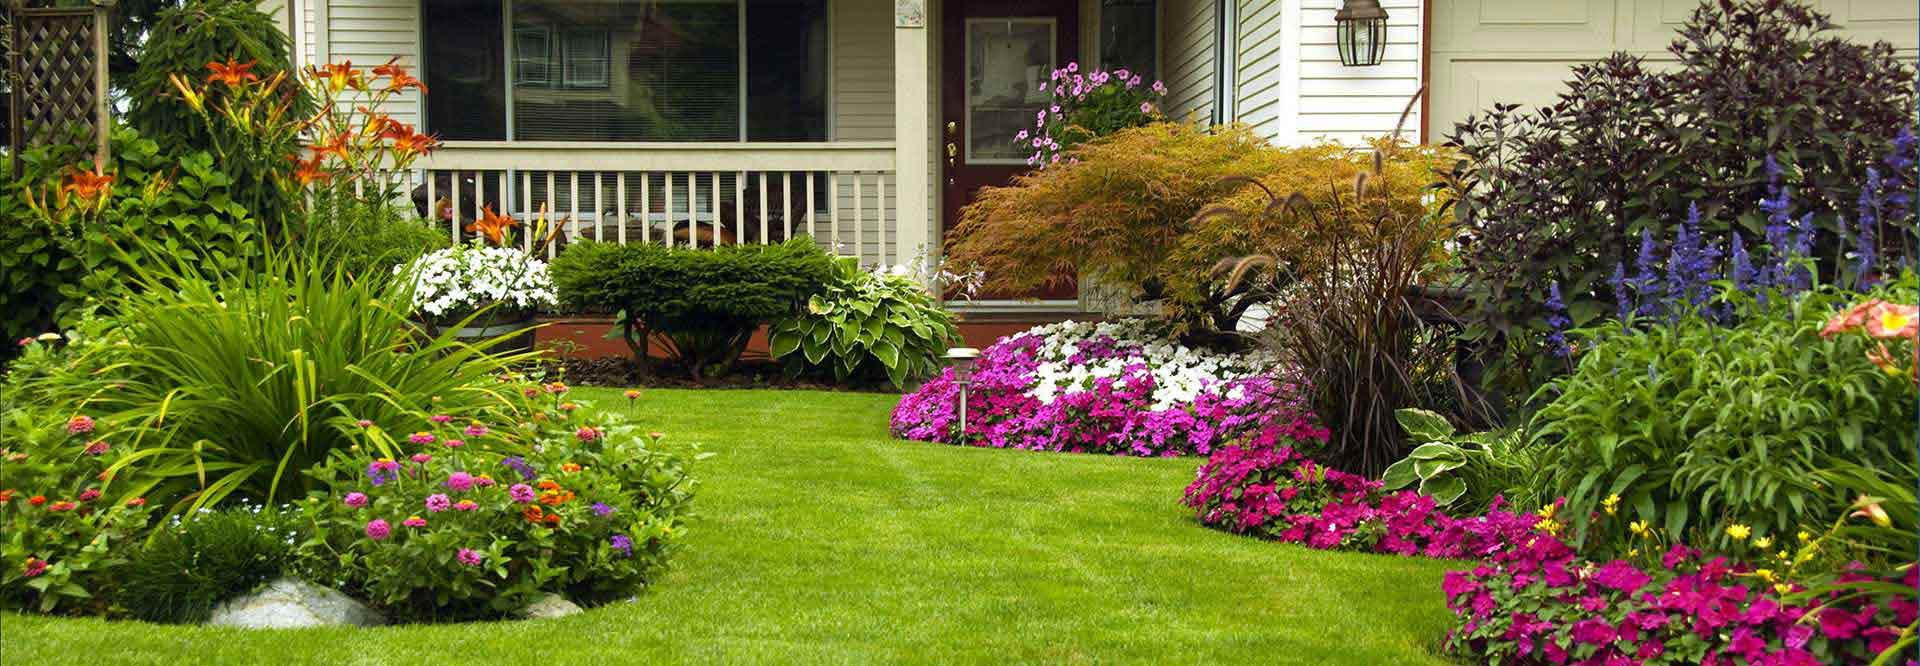 San antonio landscaping design call us today 210 725 1960 for San antonio landscaping ideas